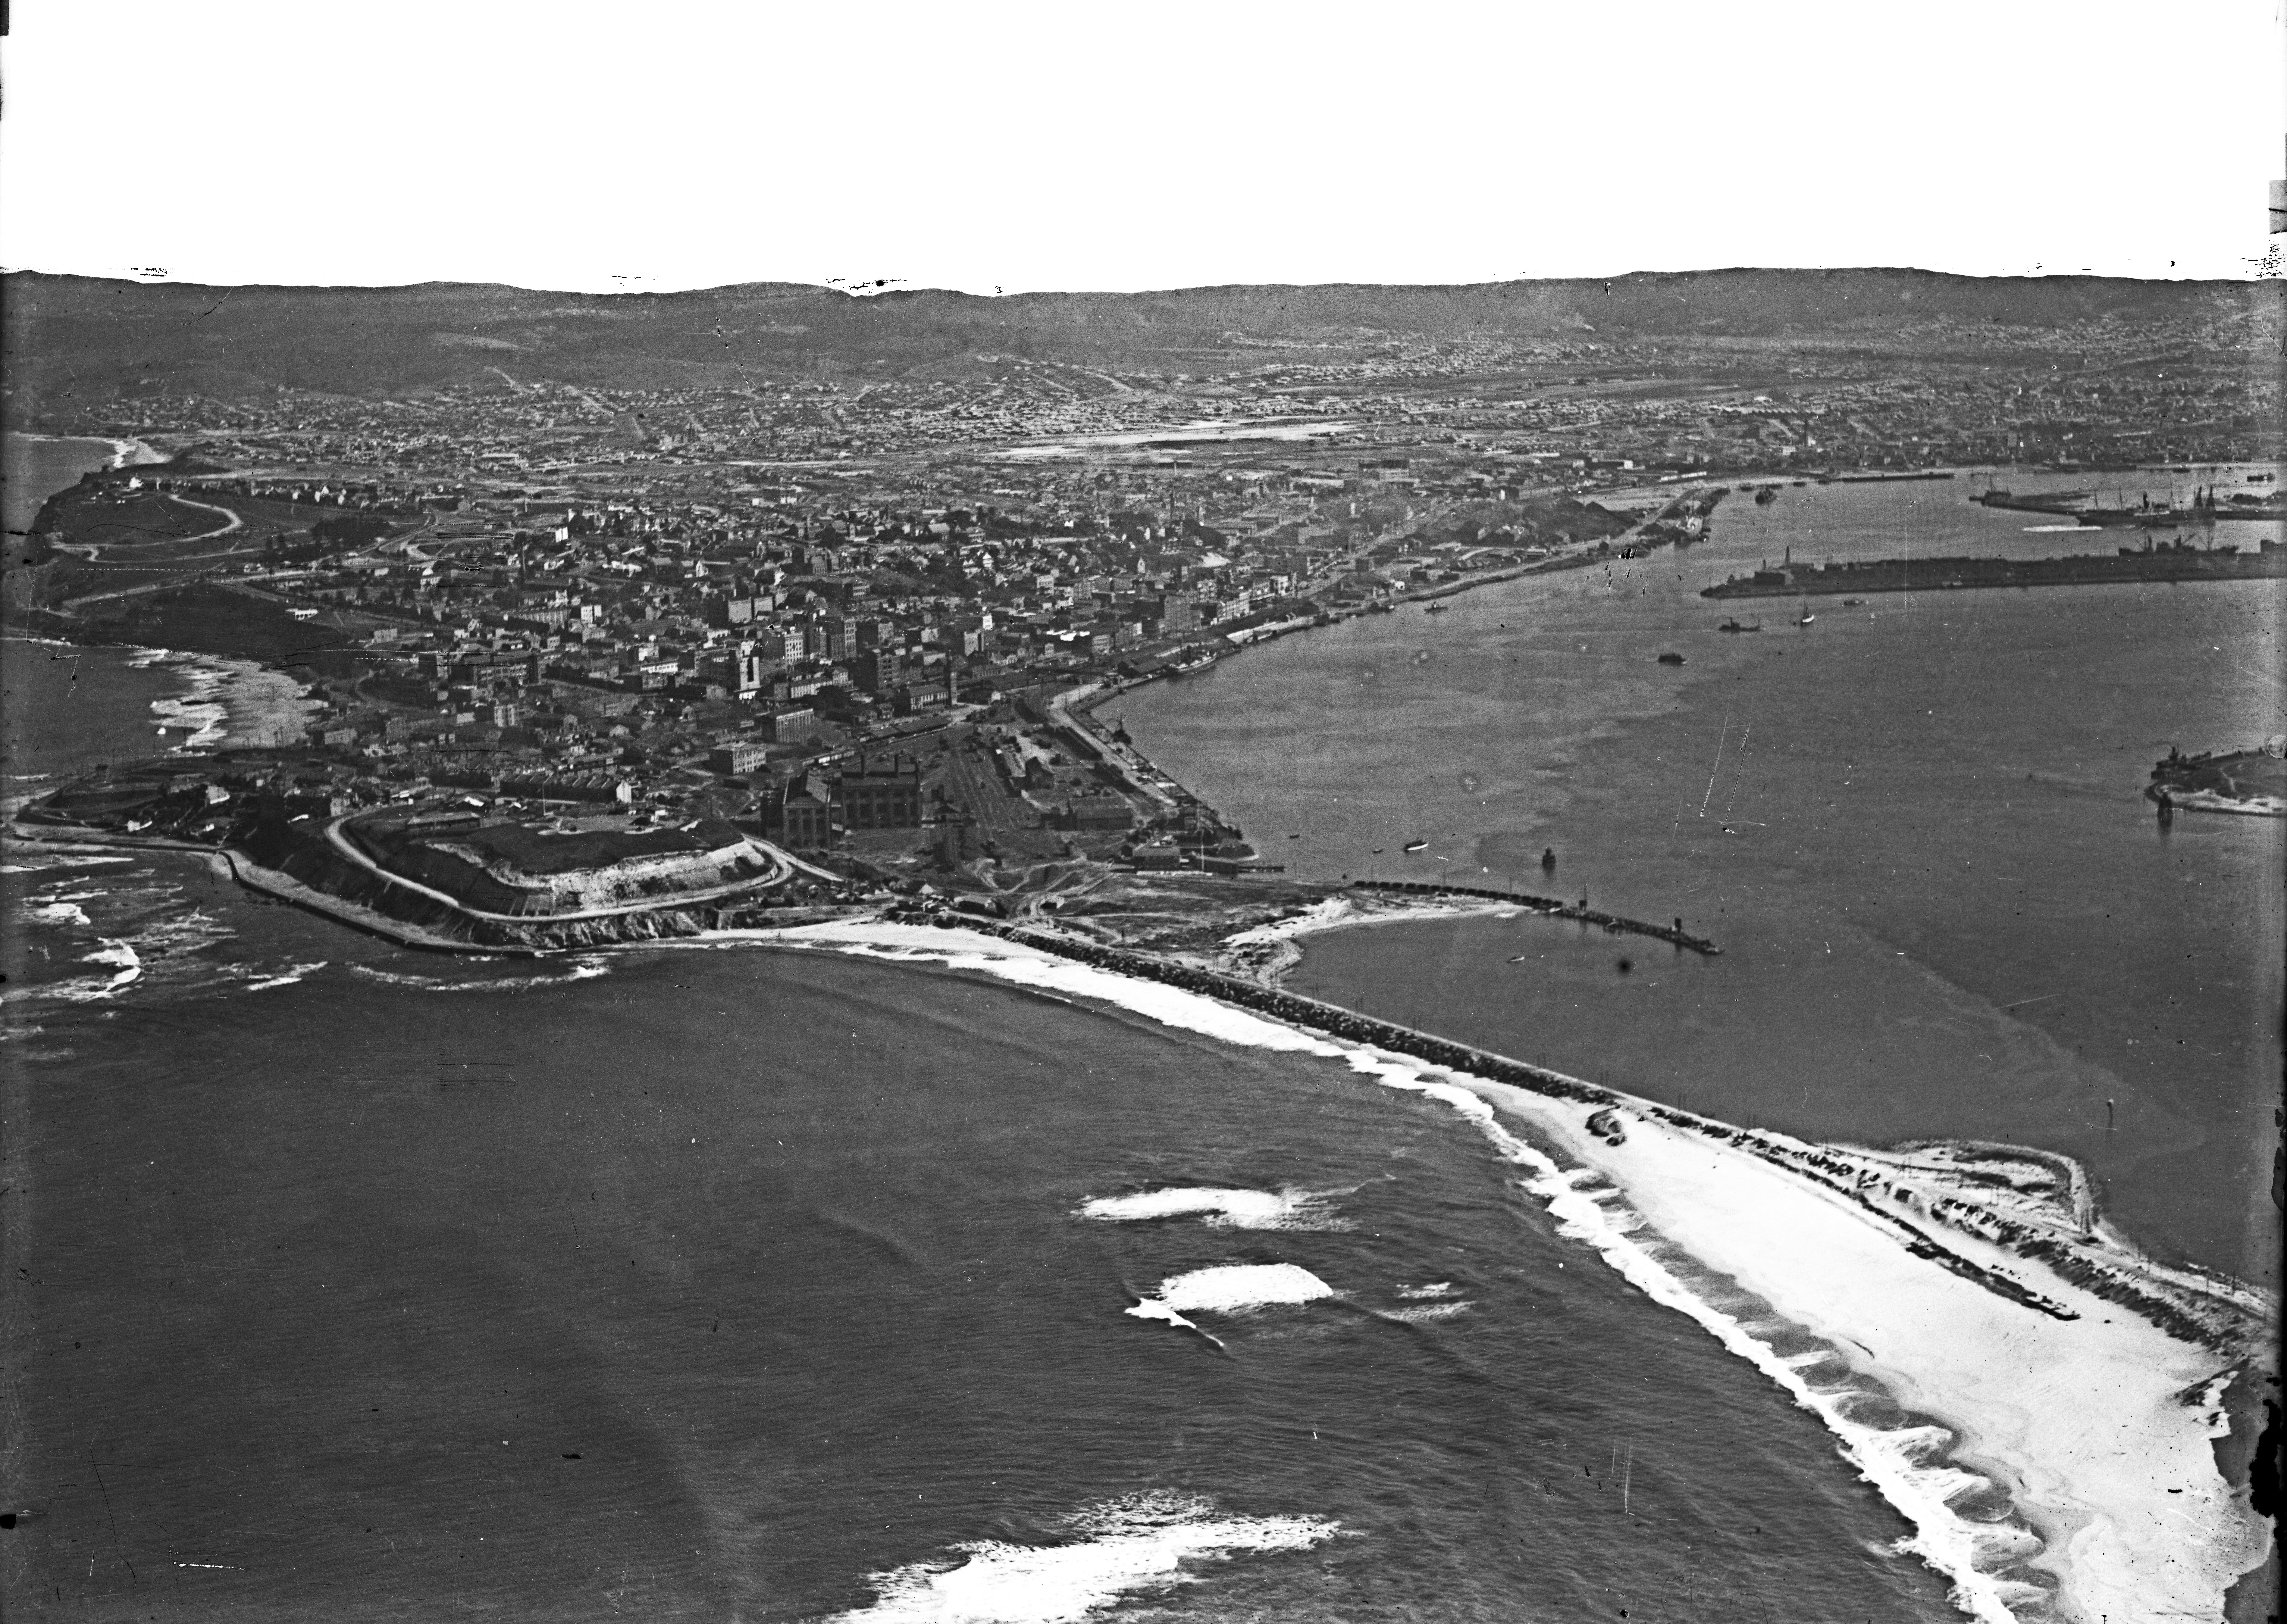 Merewether, Newcastle, Signal Hill, Fort Scratchley, Zaara Street Power House, Port Hunter, Wave Trap, Stoney Point, The Dyke, The Basin, Bullock Island (Photograph by Milton Kent Airplane Photographs, Sydney. Southern No. 66.-.-.-.1935.W.jpg)